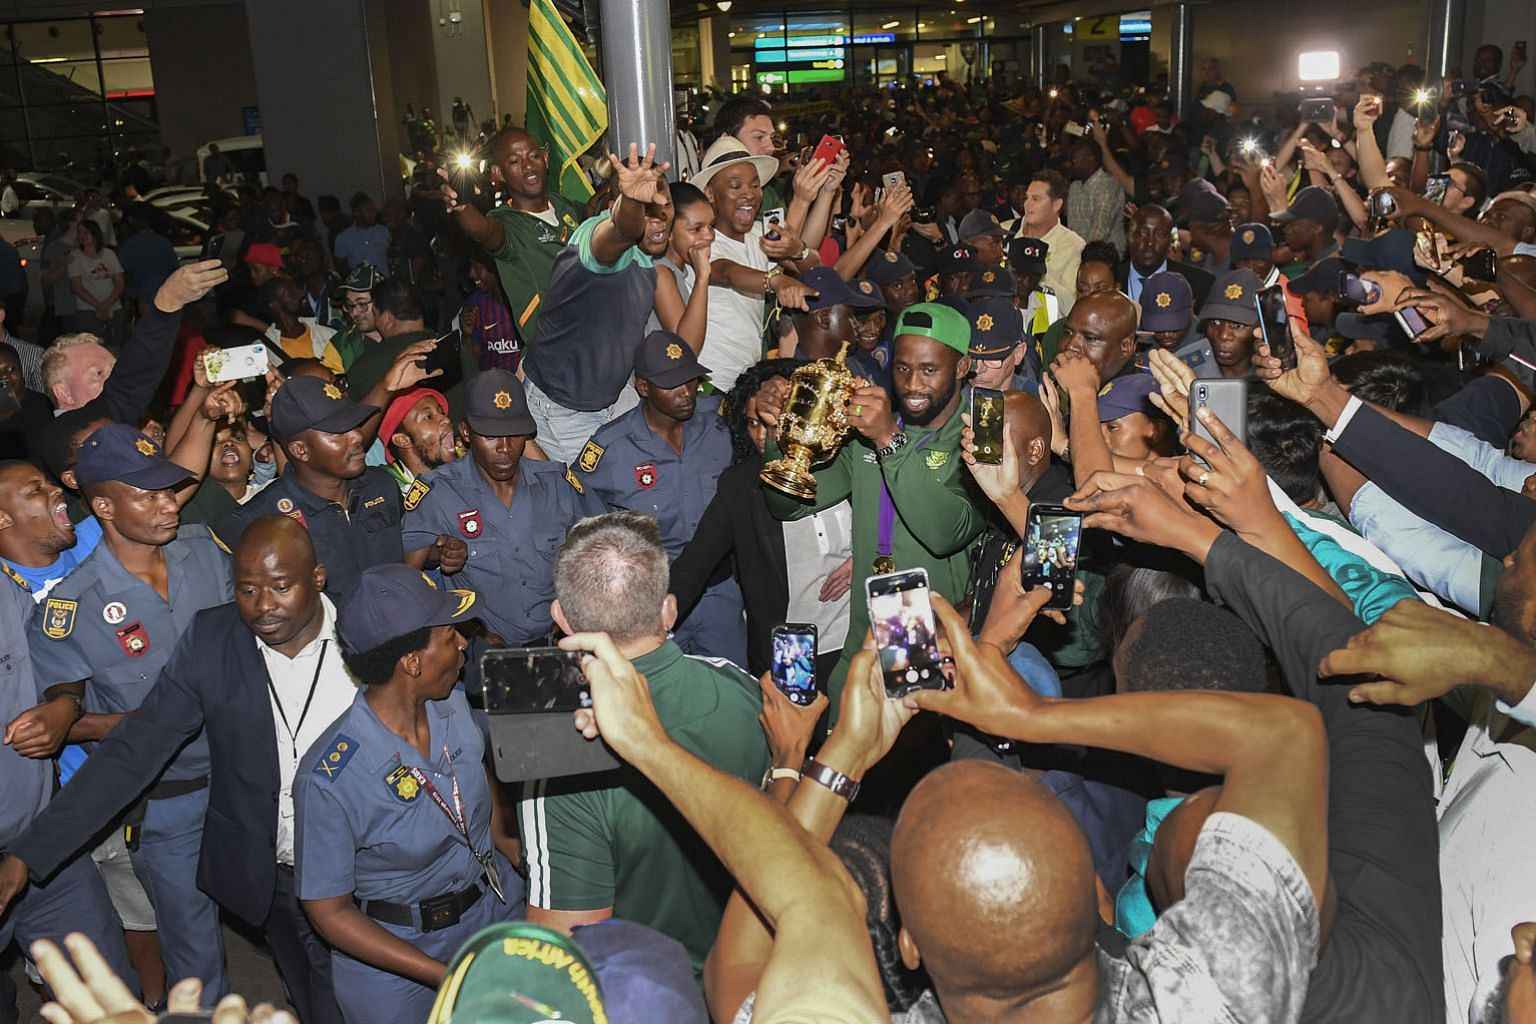 South Africa captain Siya Kolisi holding the Webb Ellis Trophy while walking through the throng of supporters who turned up at the airport to fete the return of the Springboks. PHOTO: EPA-EFE